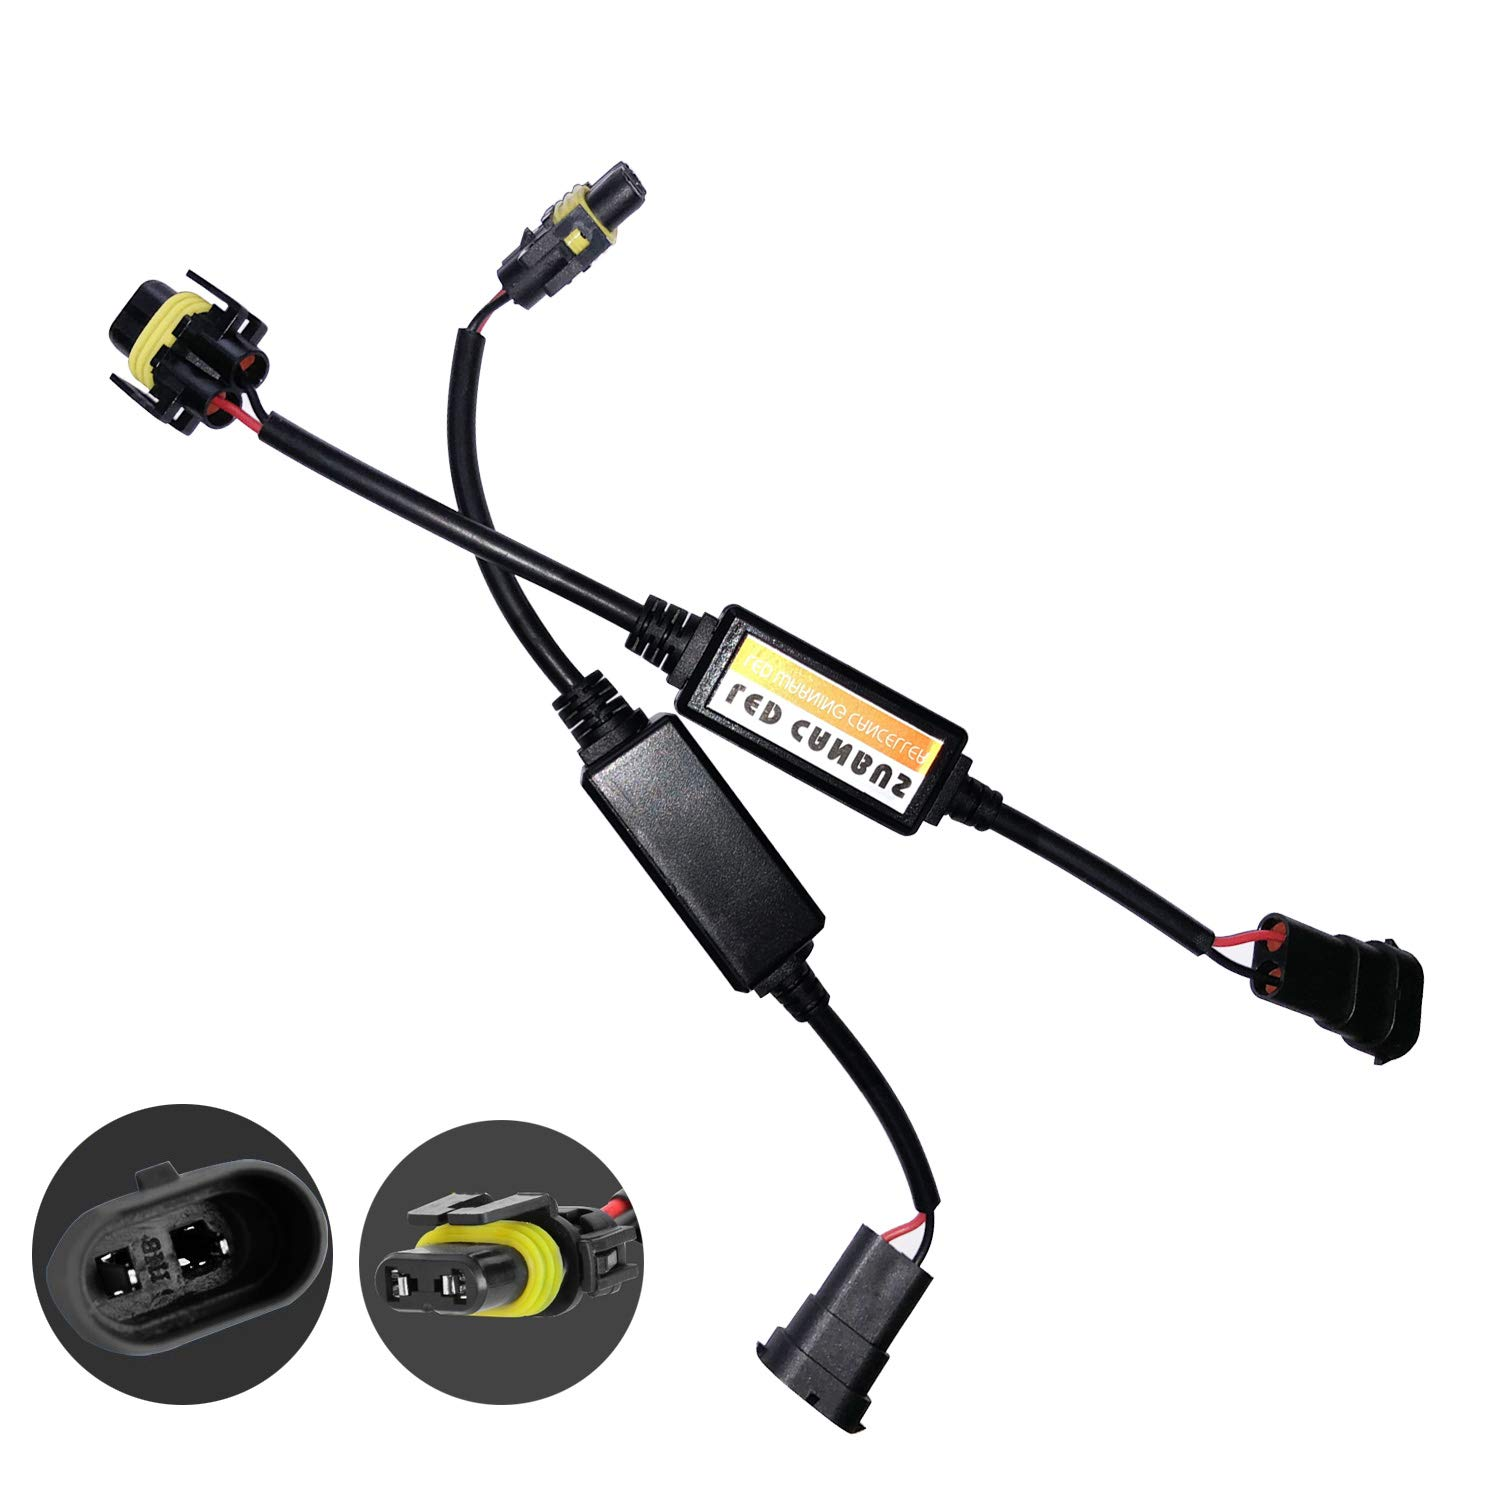 H11 H8 H9 LED Conversion Kit Headlight Canbus Error Free Anti Flickering Resistor Decoder Computer Warning Canceller Capacitor Harness Relay Resistor Adapter Plug & Play